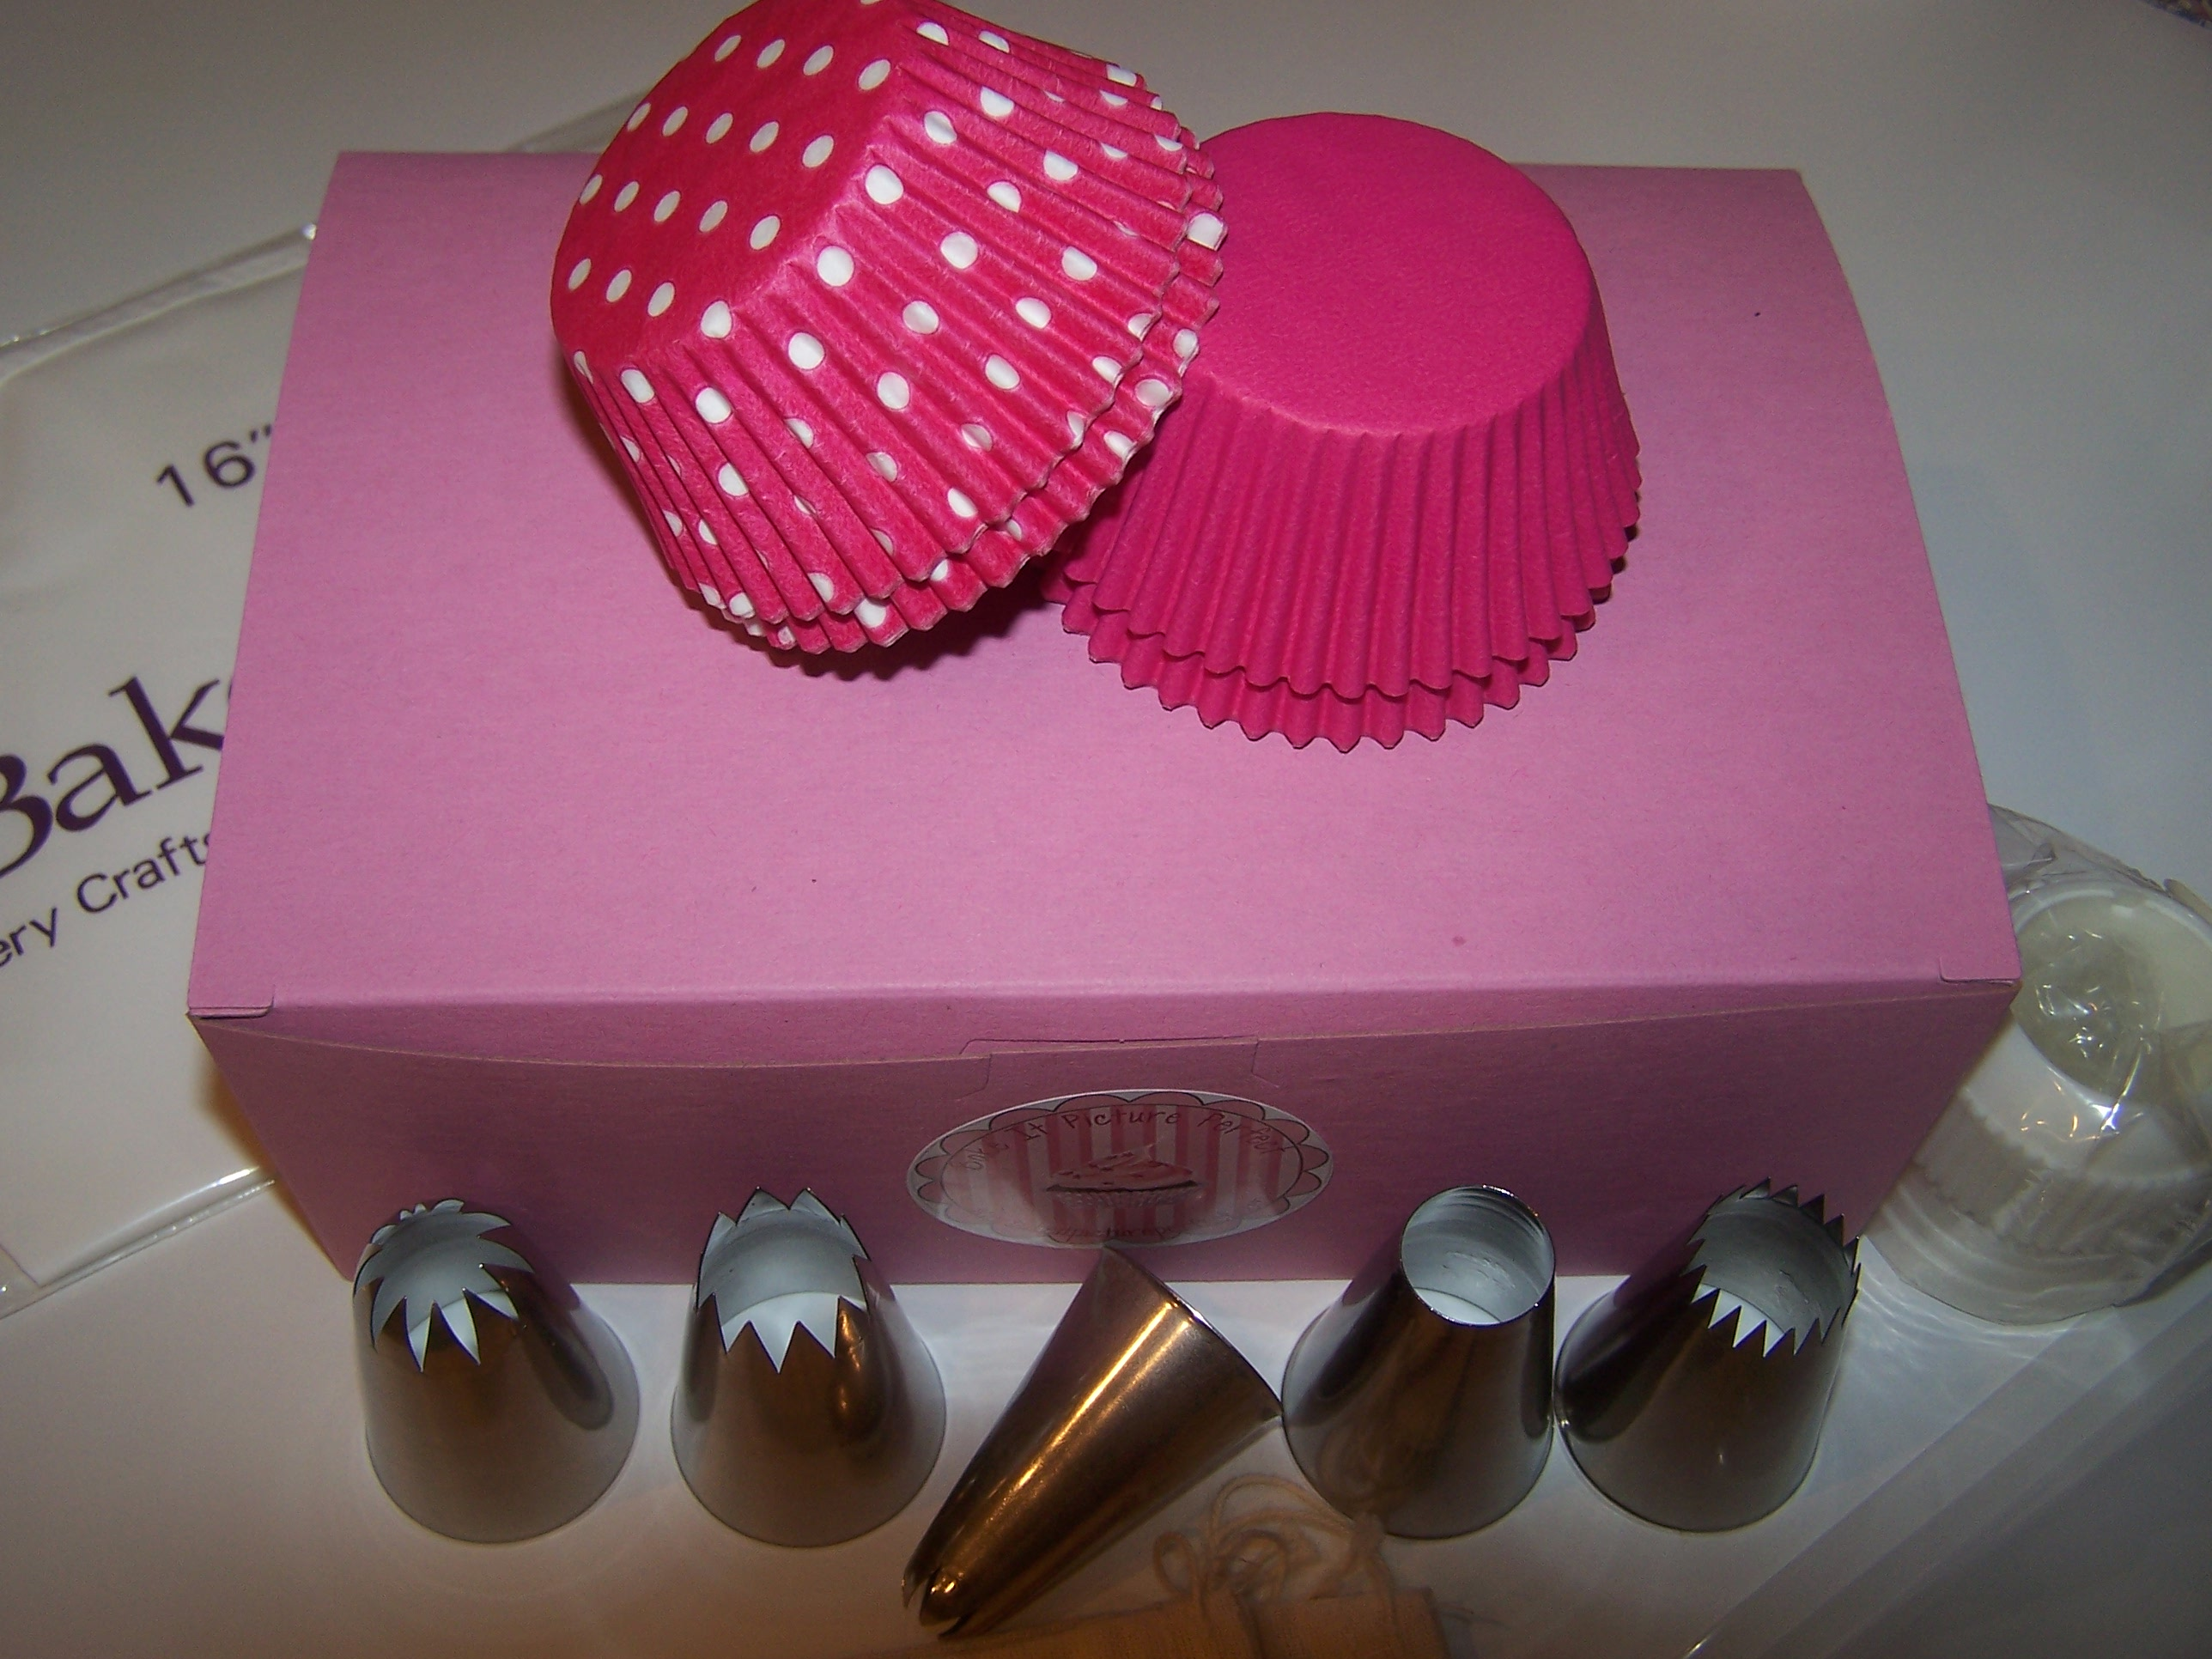 The Pink Box - The Complete Cupcake Icing Kit